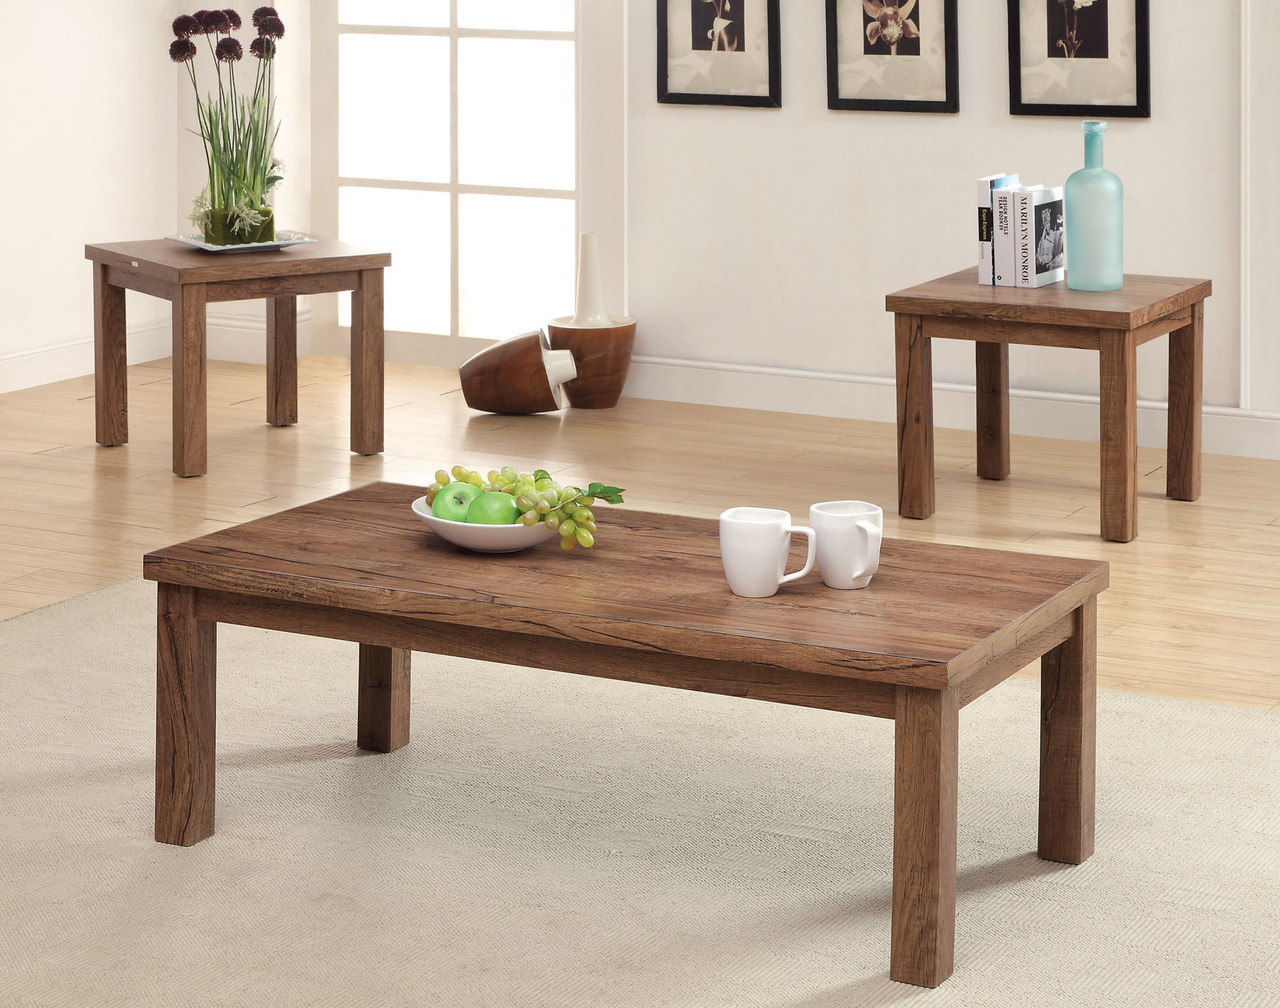 sorrel iii rustic oak solid wood table set coffee and end tables categories leons bedroom furniture extra large dog pen stanley white riverside belmeade dining pulaski settee